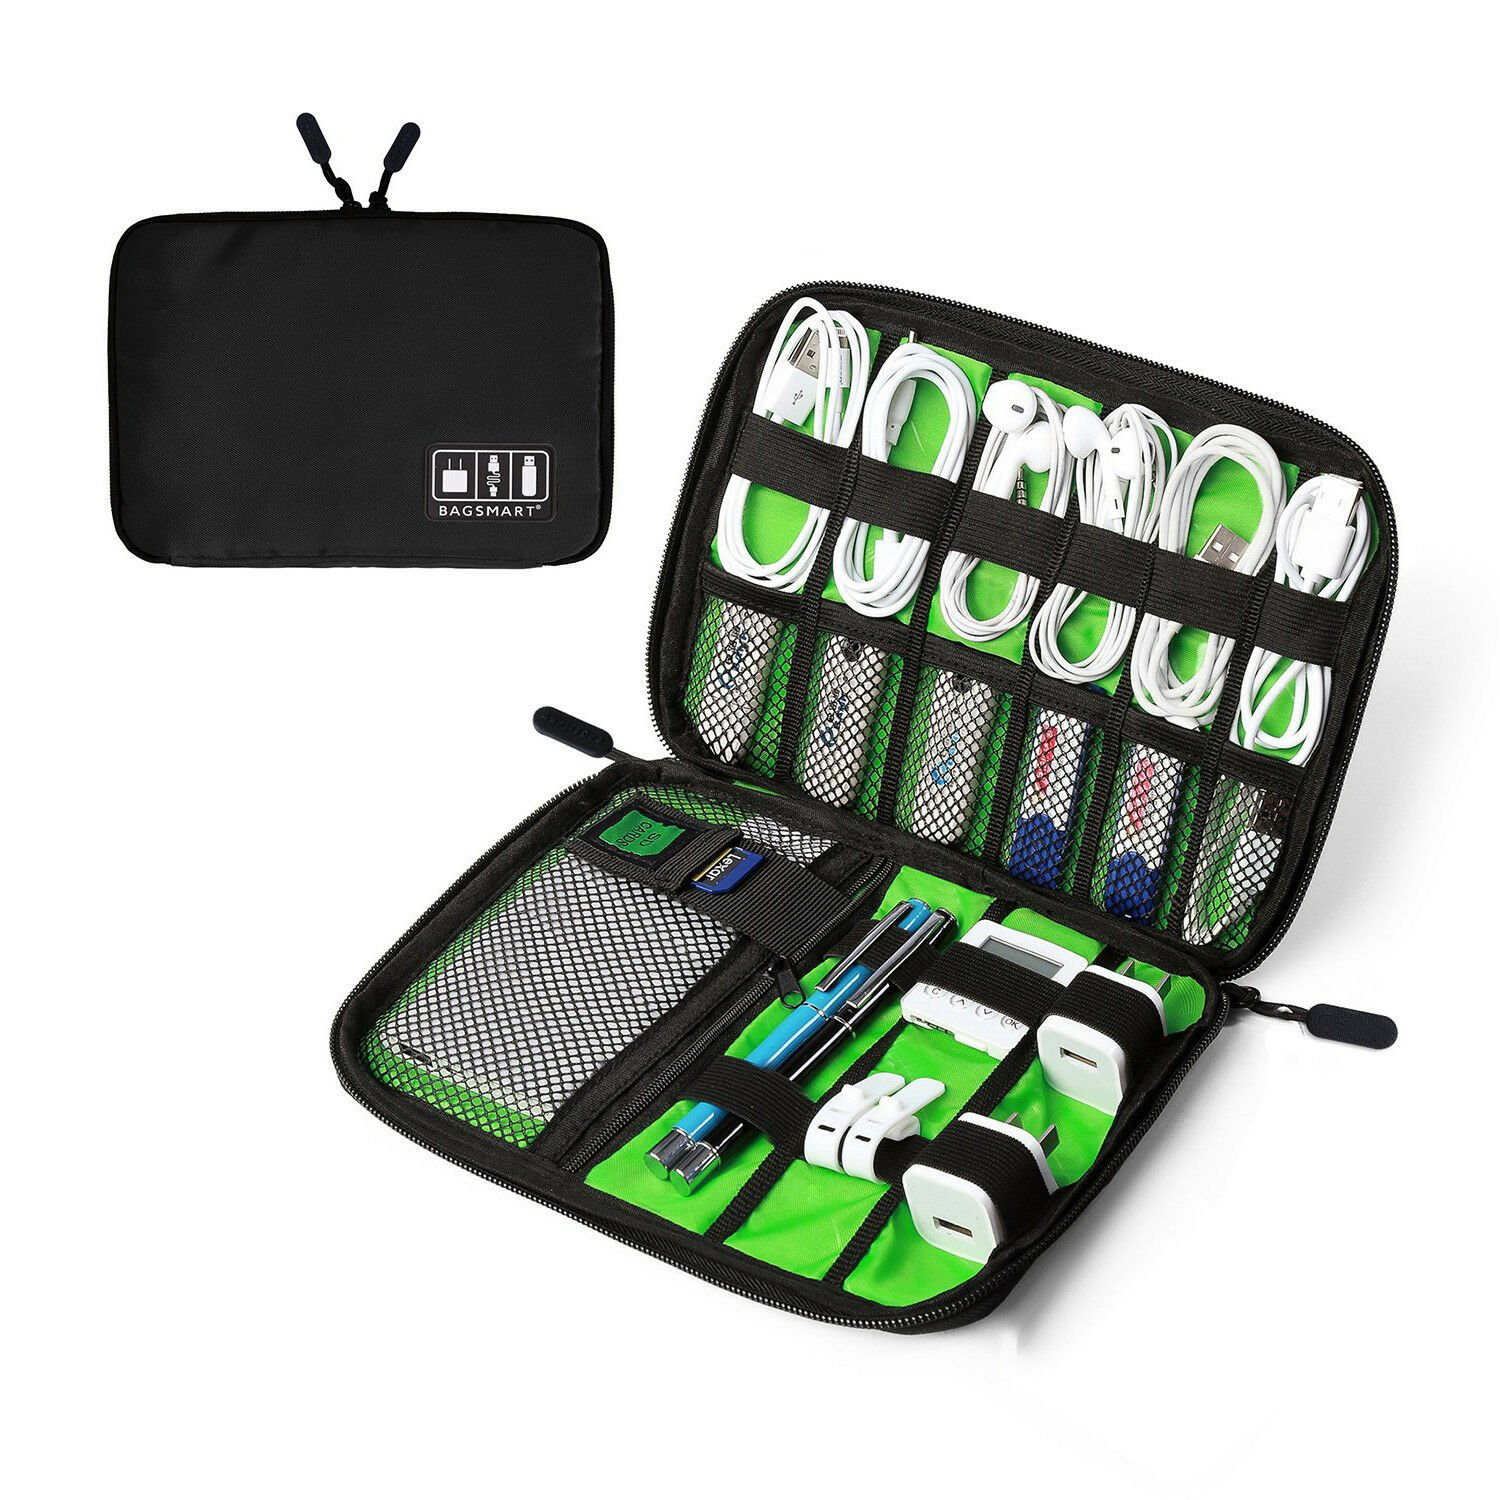 Portable Electronic Accessories Cable USB Drive Organizer Bag Travel I...